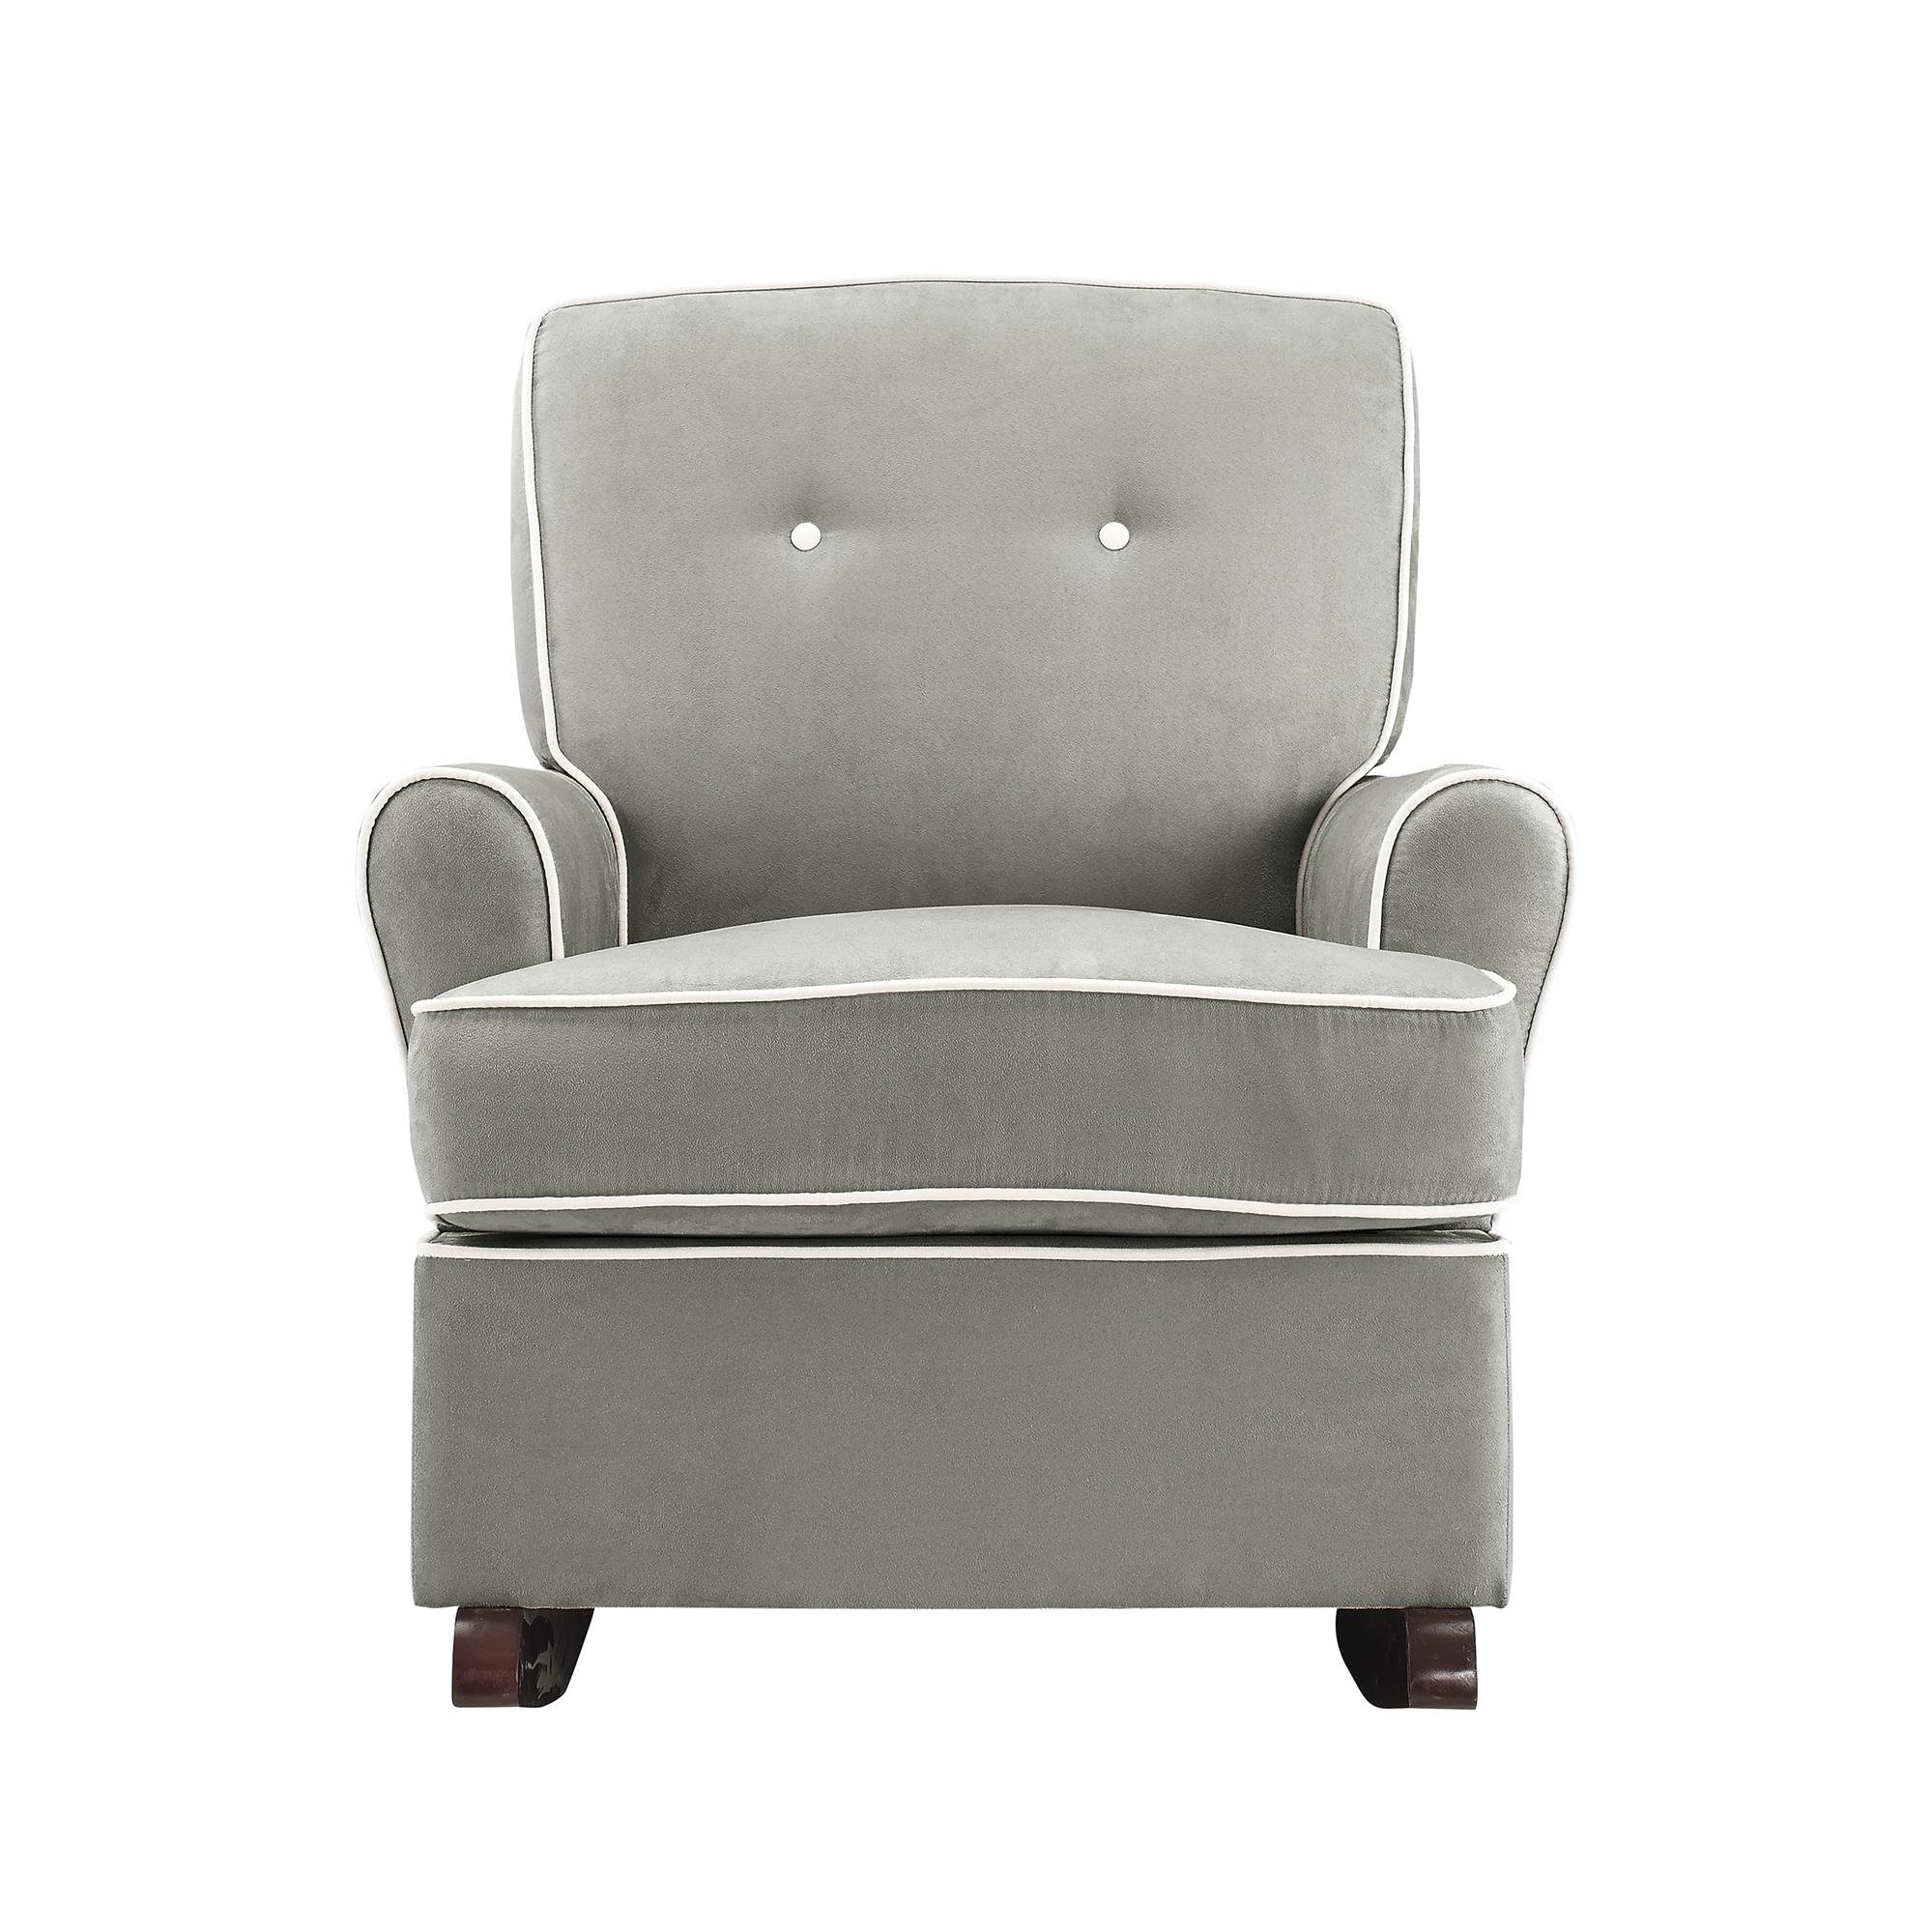 Baby Relax Tinsley Nursery Rocker Chair, Gray by Baby Relax